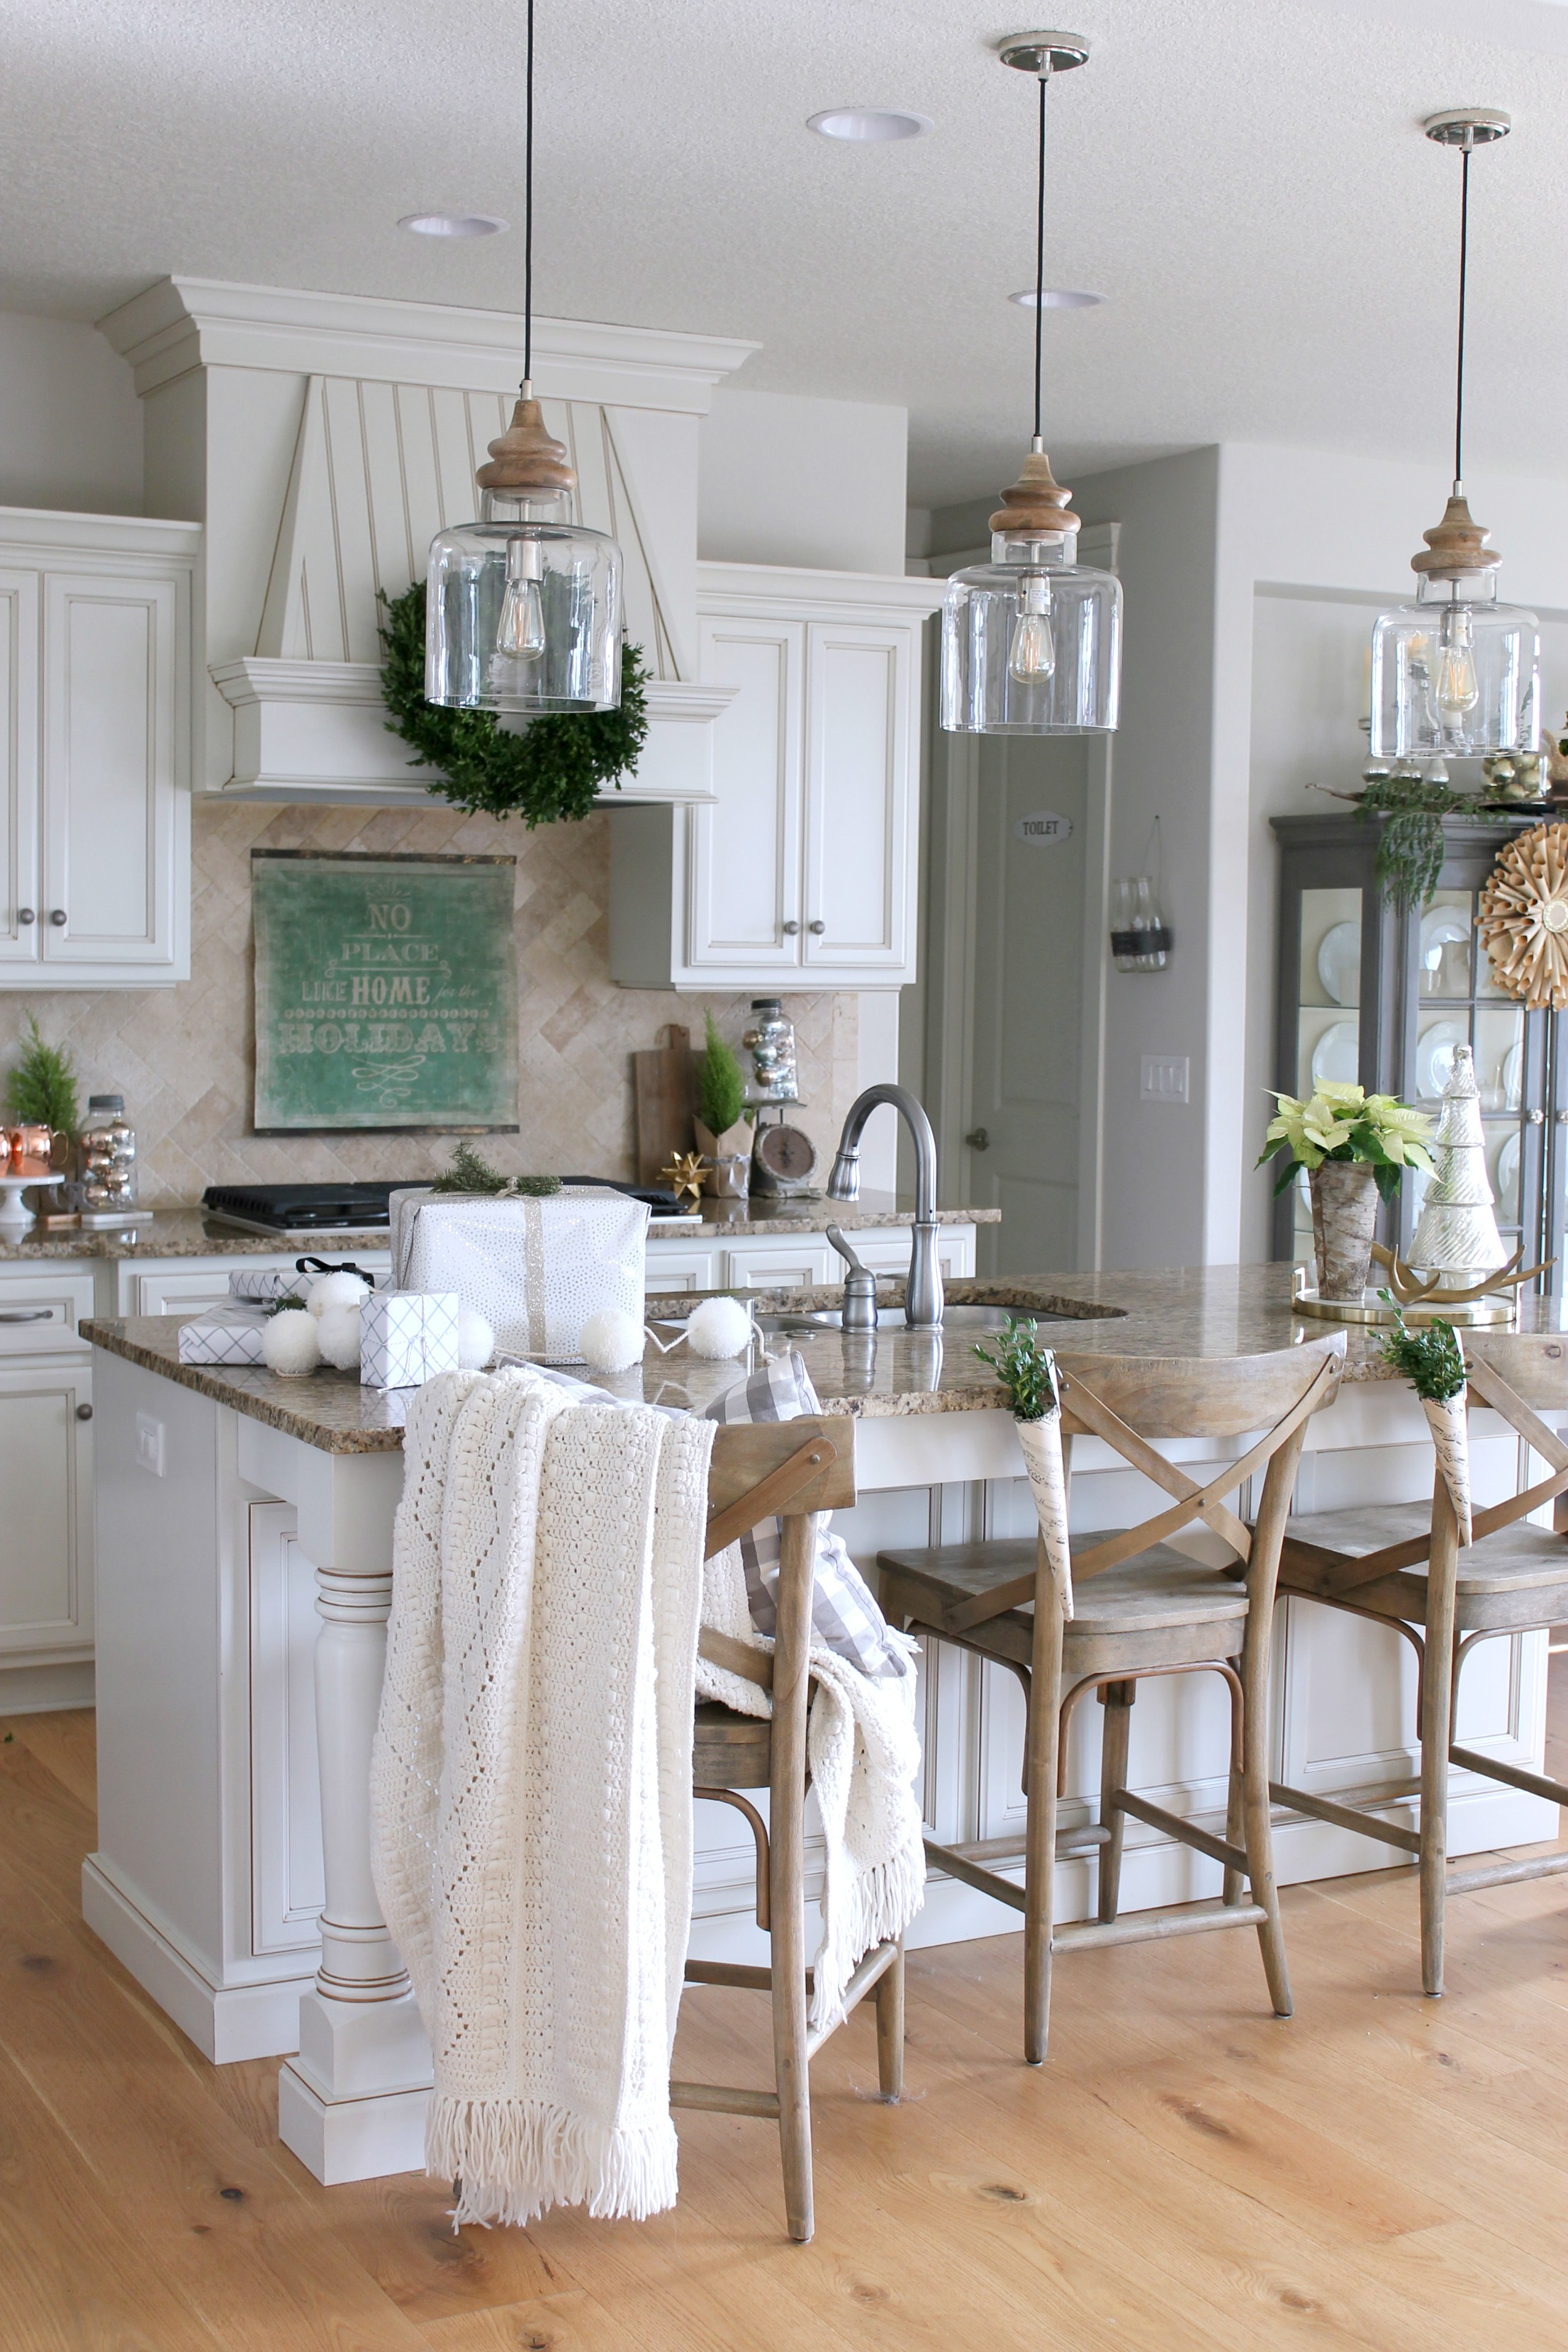 hanging lights kitchen brushed nickel cabinet hardware new farmhouse style island pendant chic california